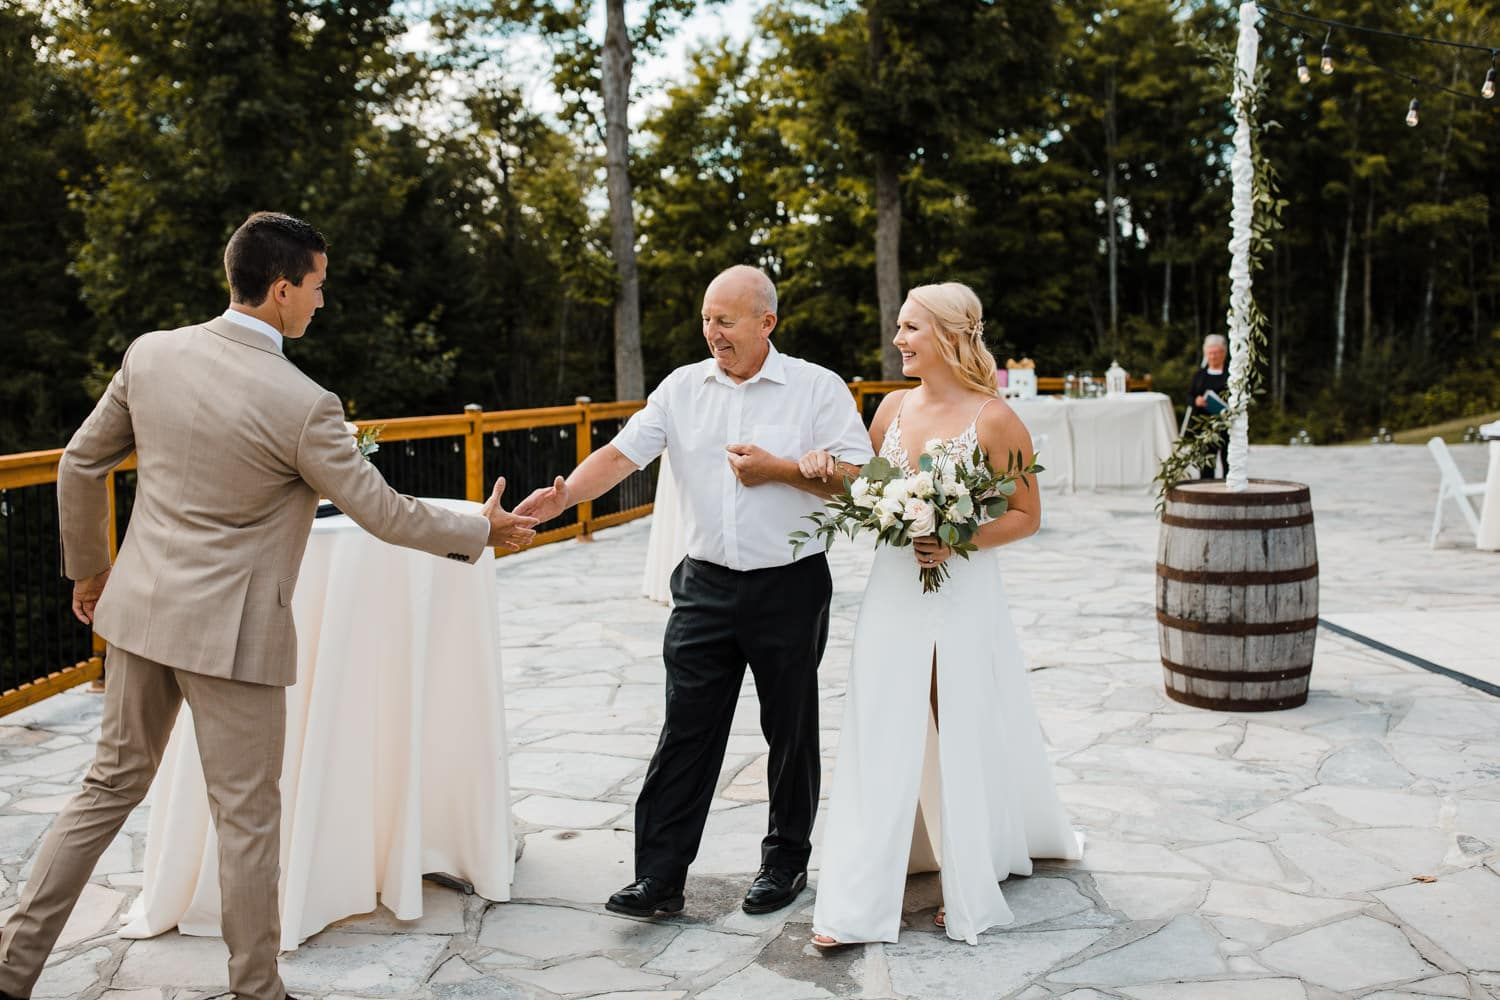 bride and father walk down aisle at outdoor surprise wedding